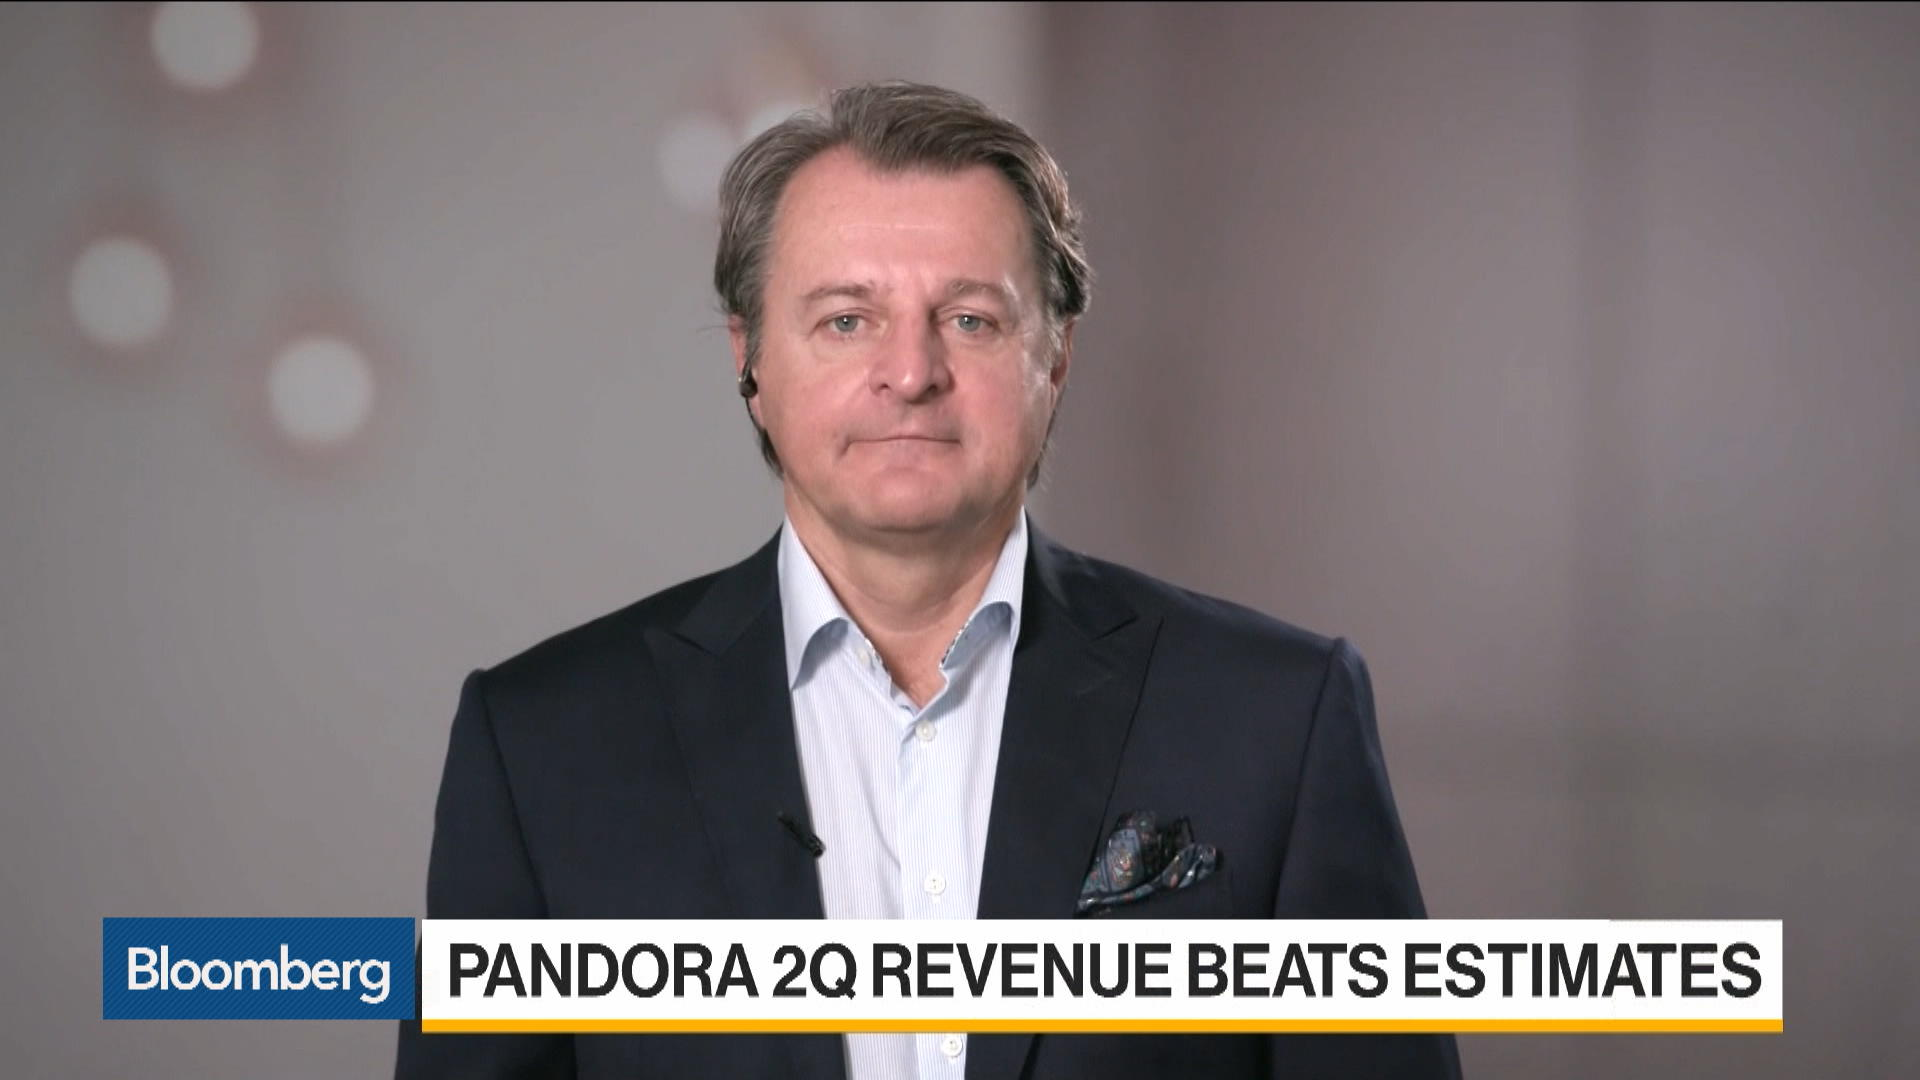 Still a lot of Work Ahead for Pandora, Says CEO